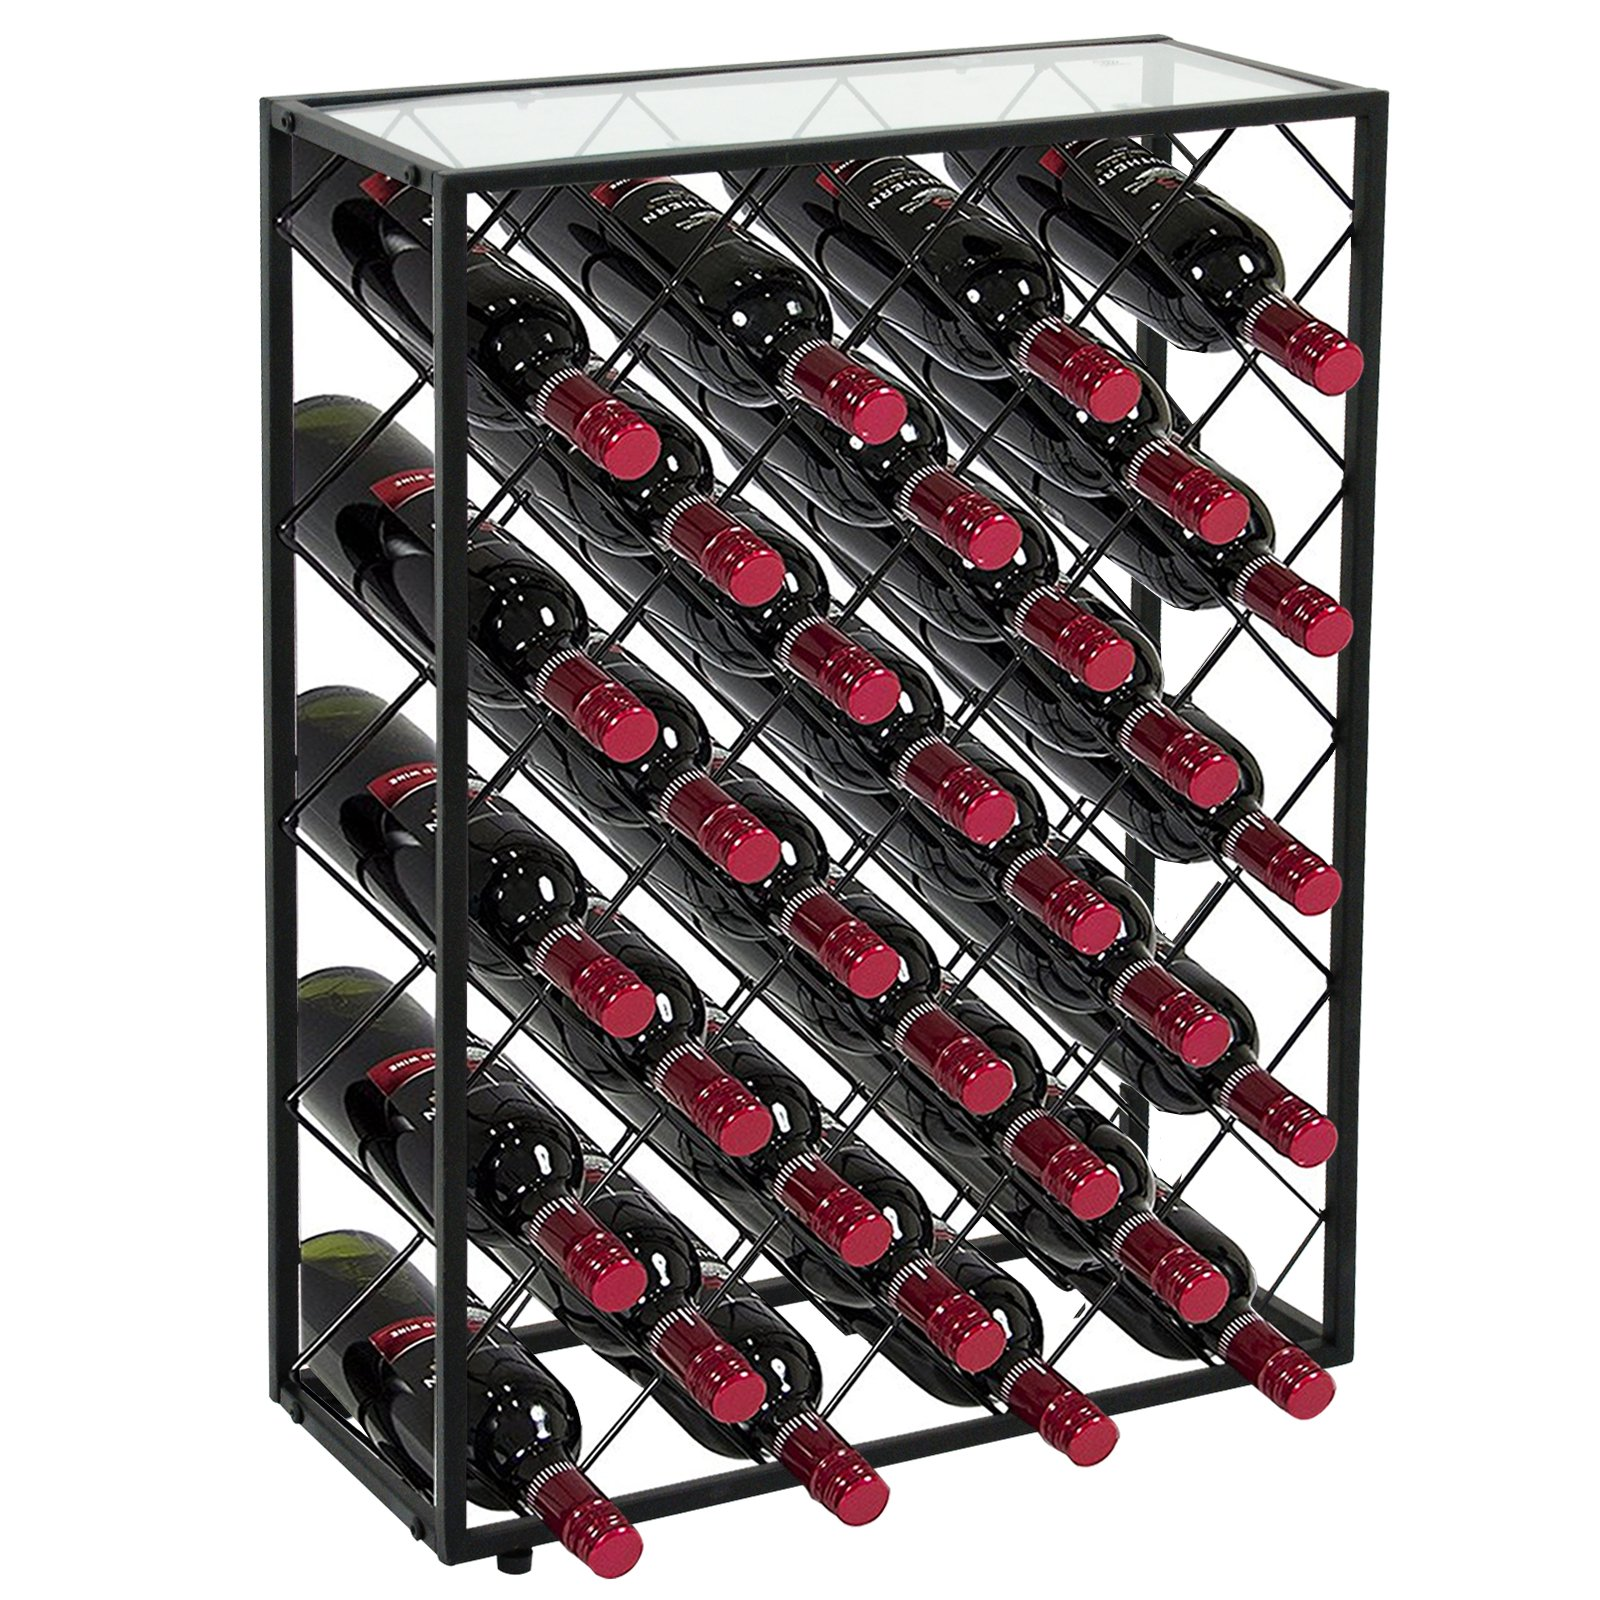 LEMY 32 Bottle Wine Rack Holders Stands Liquor Storage Corner Wine Cabinet with Glassy Table Top, Metal Construction, Black by LEMY